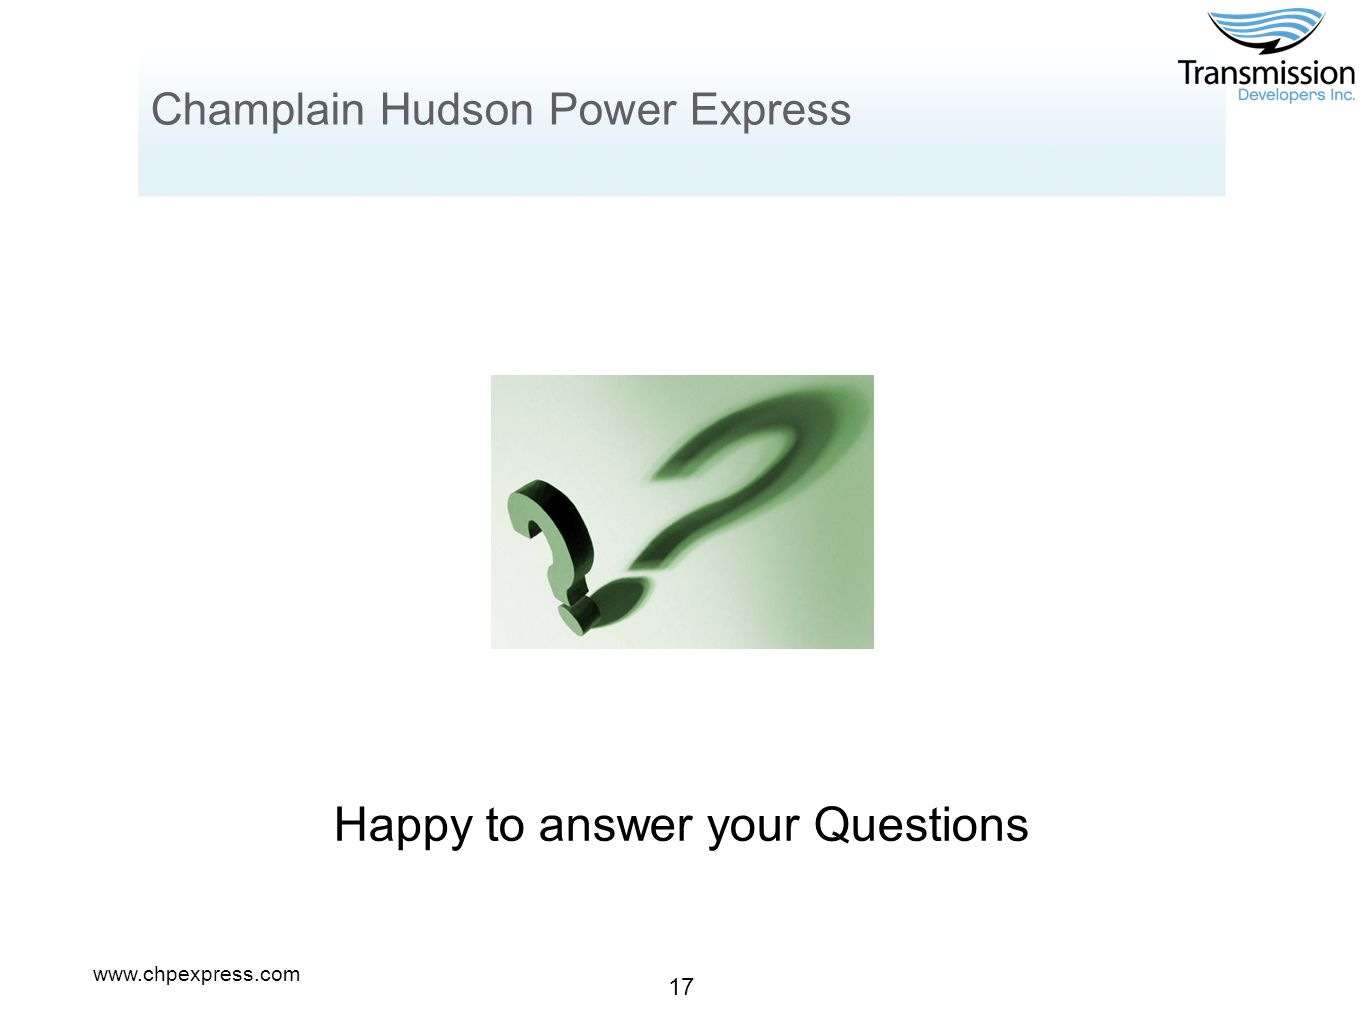 www.chpexpress.com 17 Champlain Hudson Power Express Happy to answer your Questions